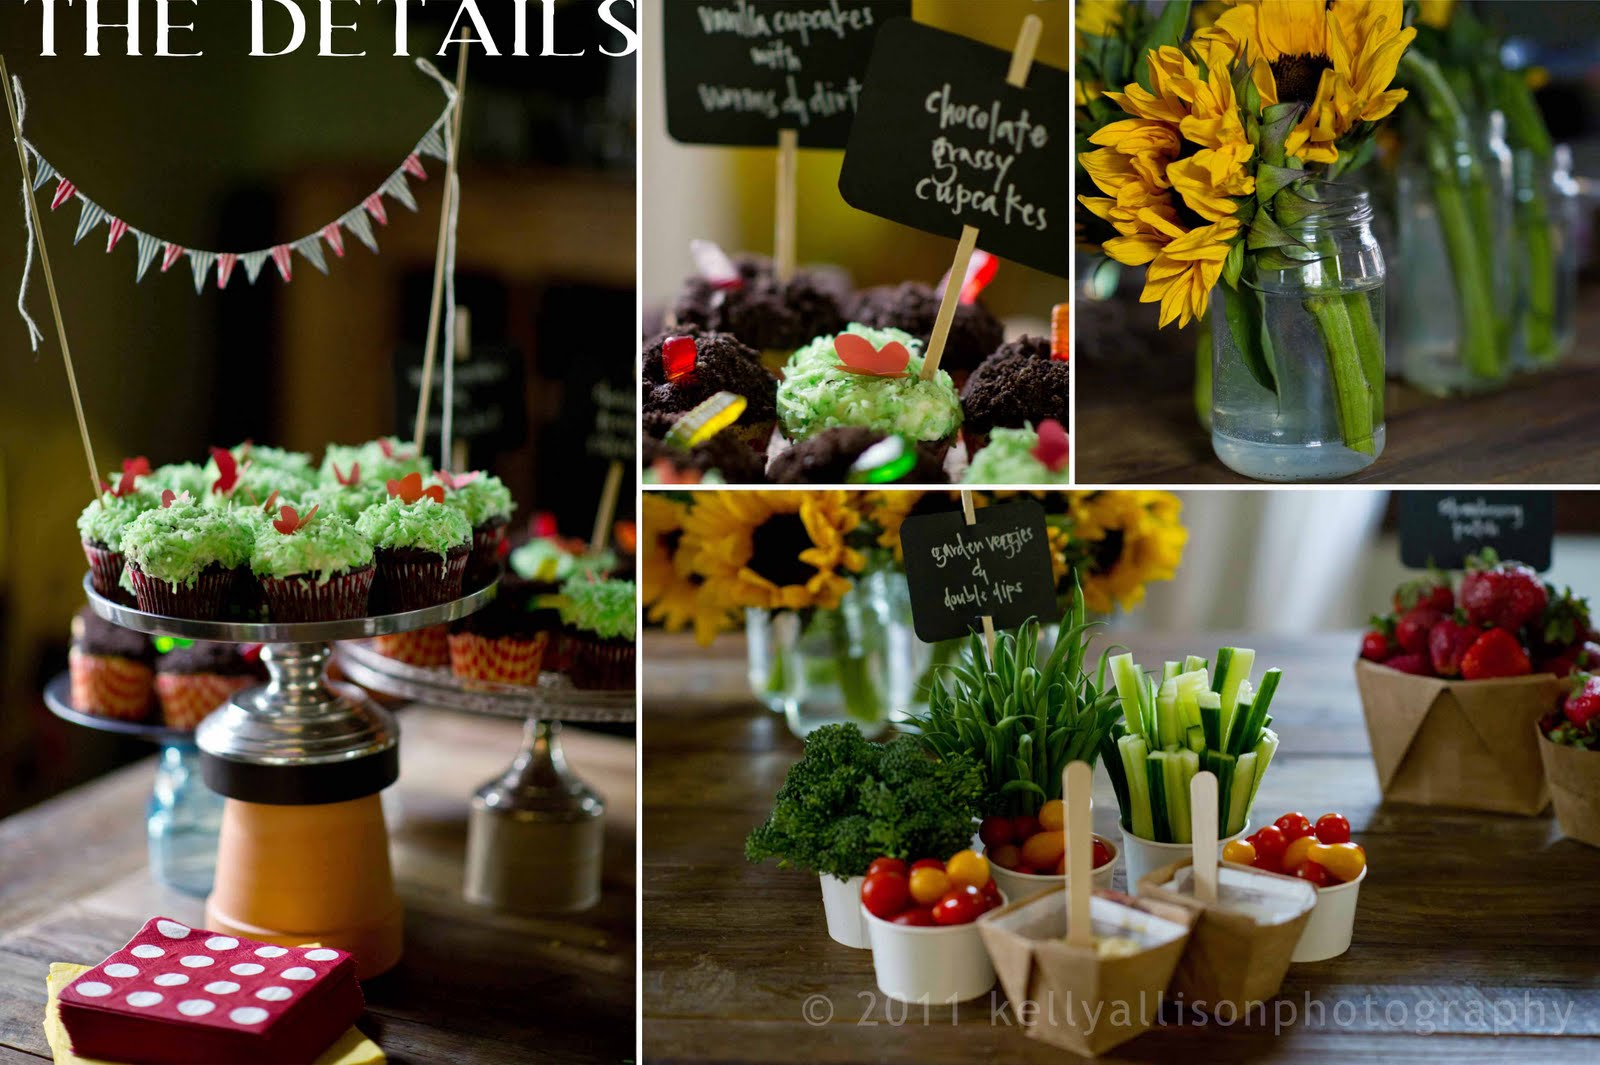 Happy birthday to you garden party kellyallison for Food garden ideas